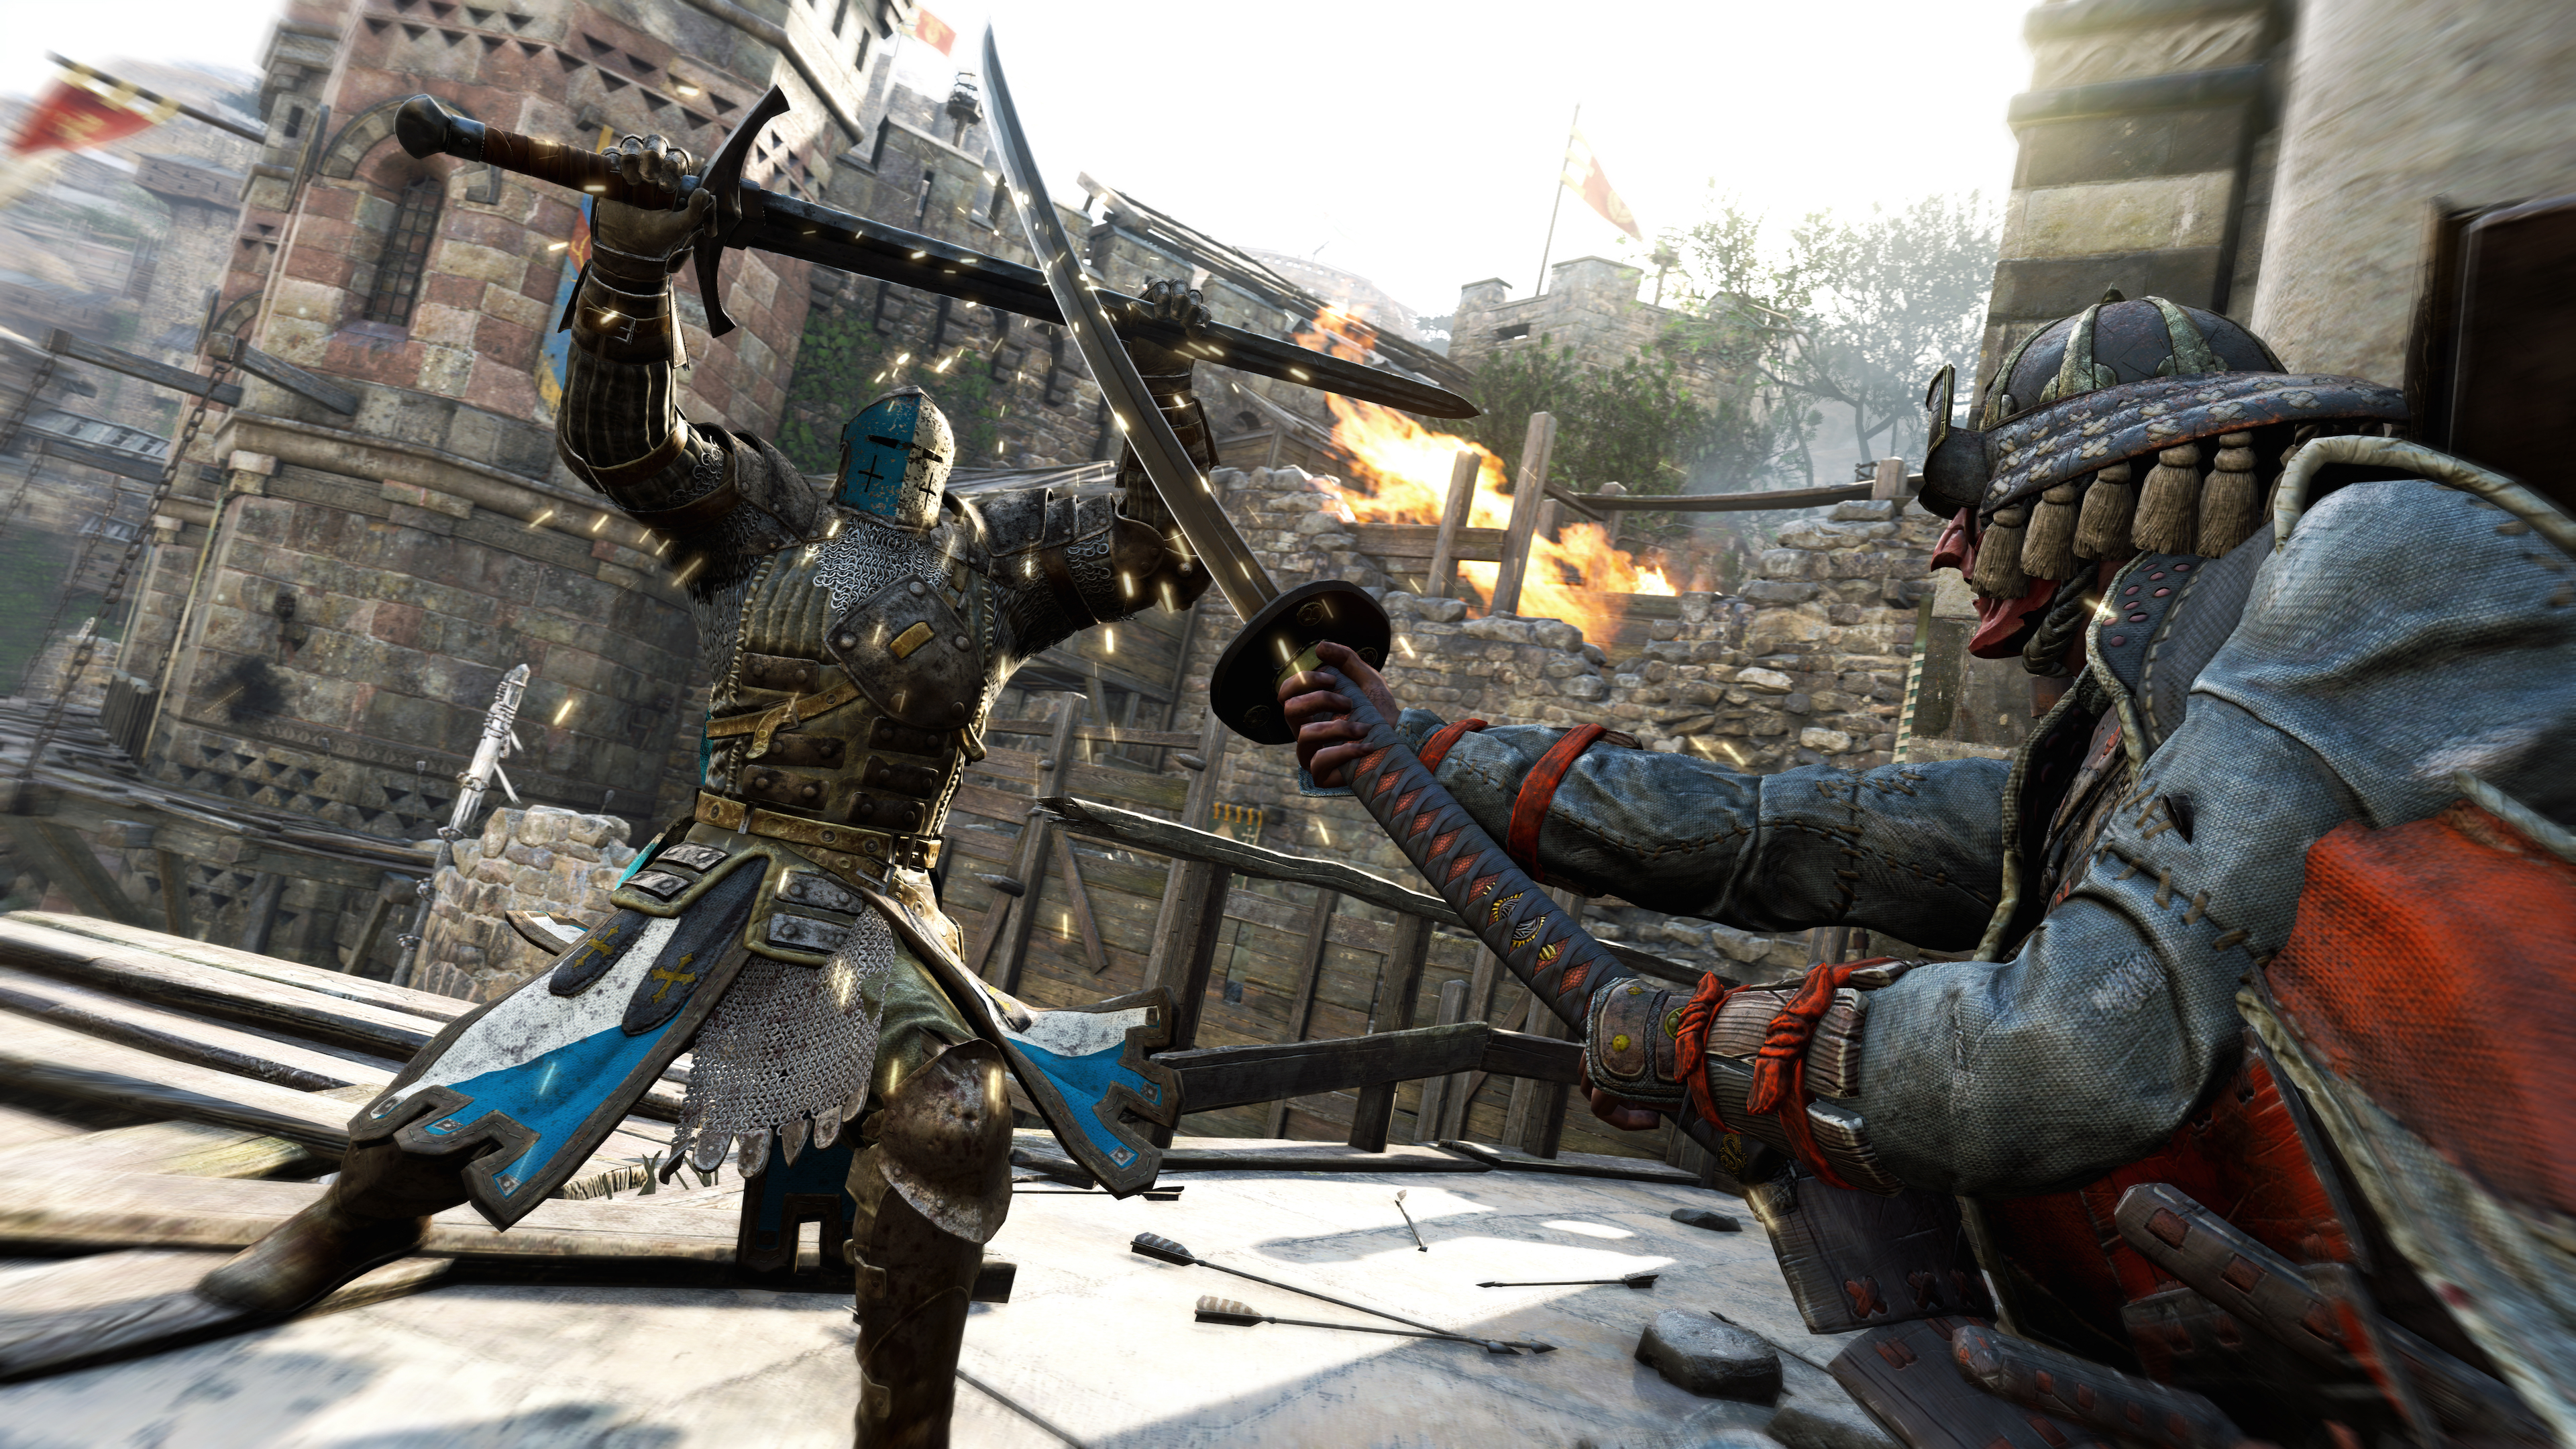 A knight and samurai clash with their swords in a screenshot from For Honor